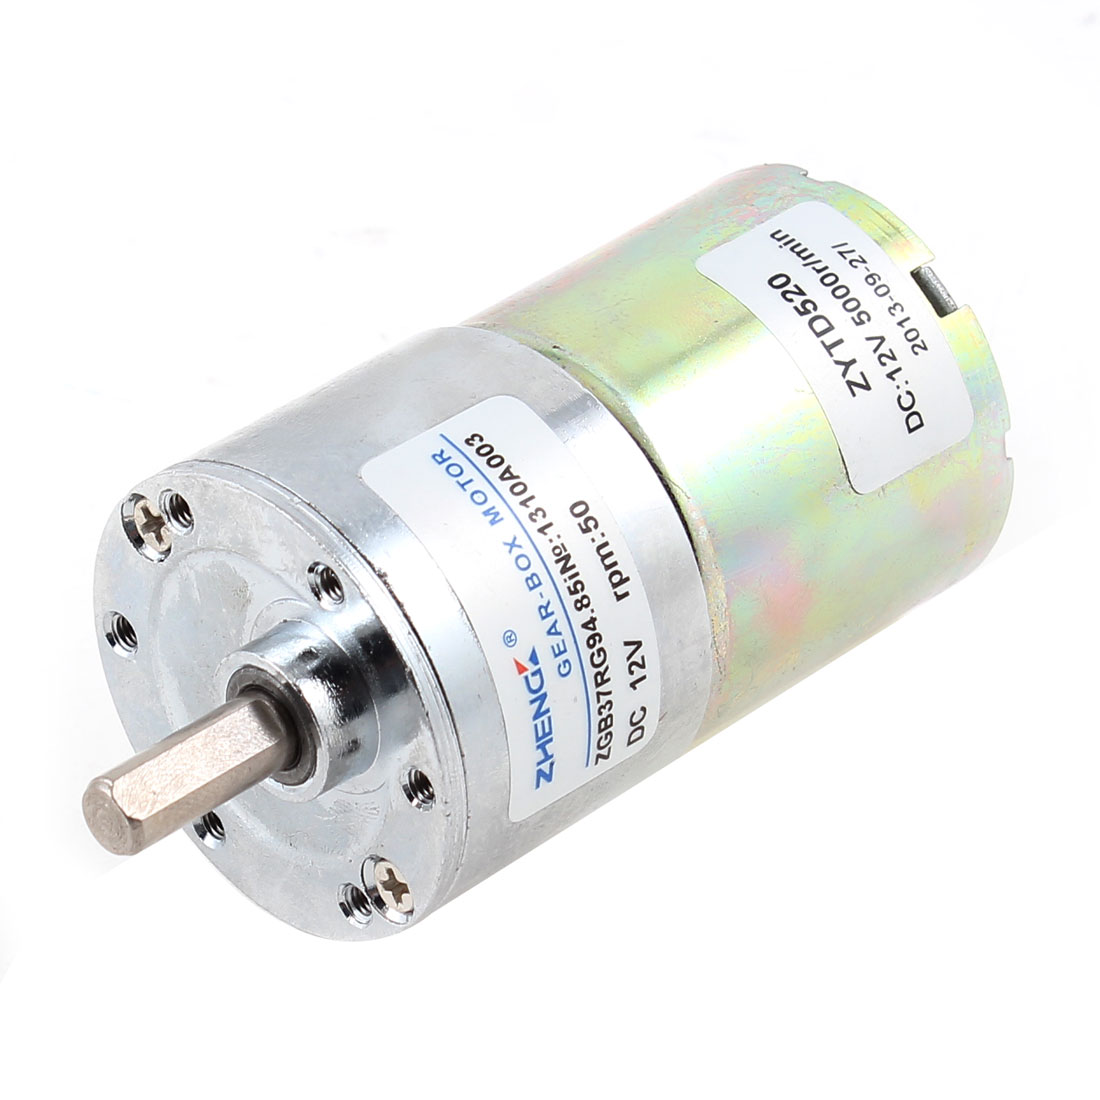 DC 12V 50RPM 6mm Shaft Dia Cylindrical Magnetic Electric Geared Box Motor